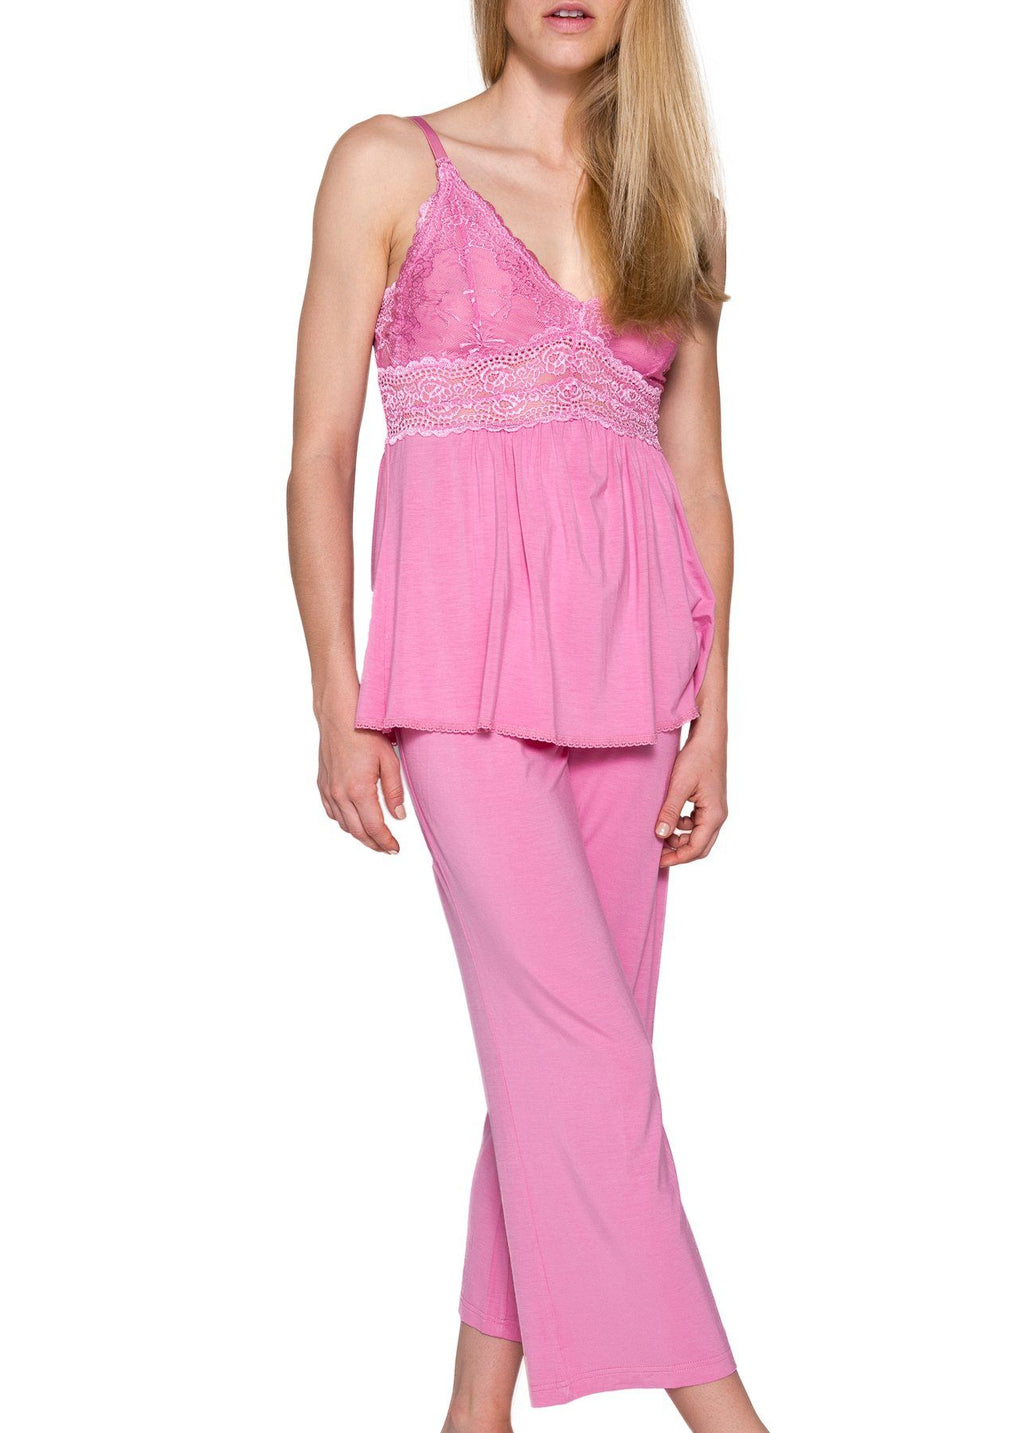 Bliss Pajama - Sea Pink Mystique Intimates